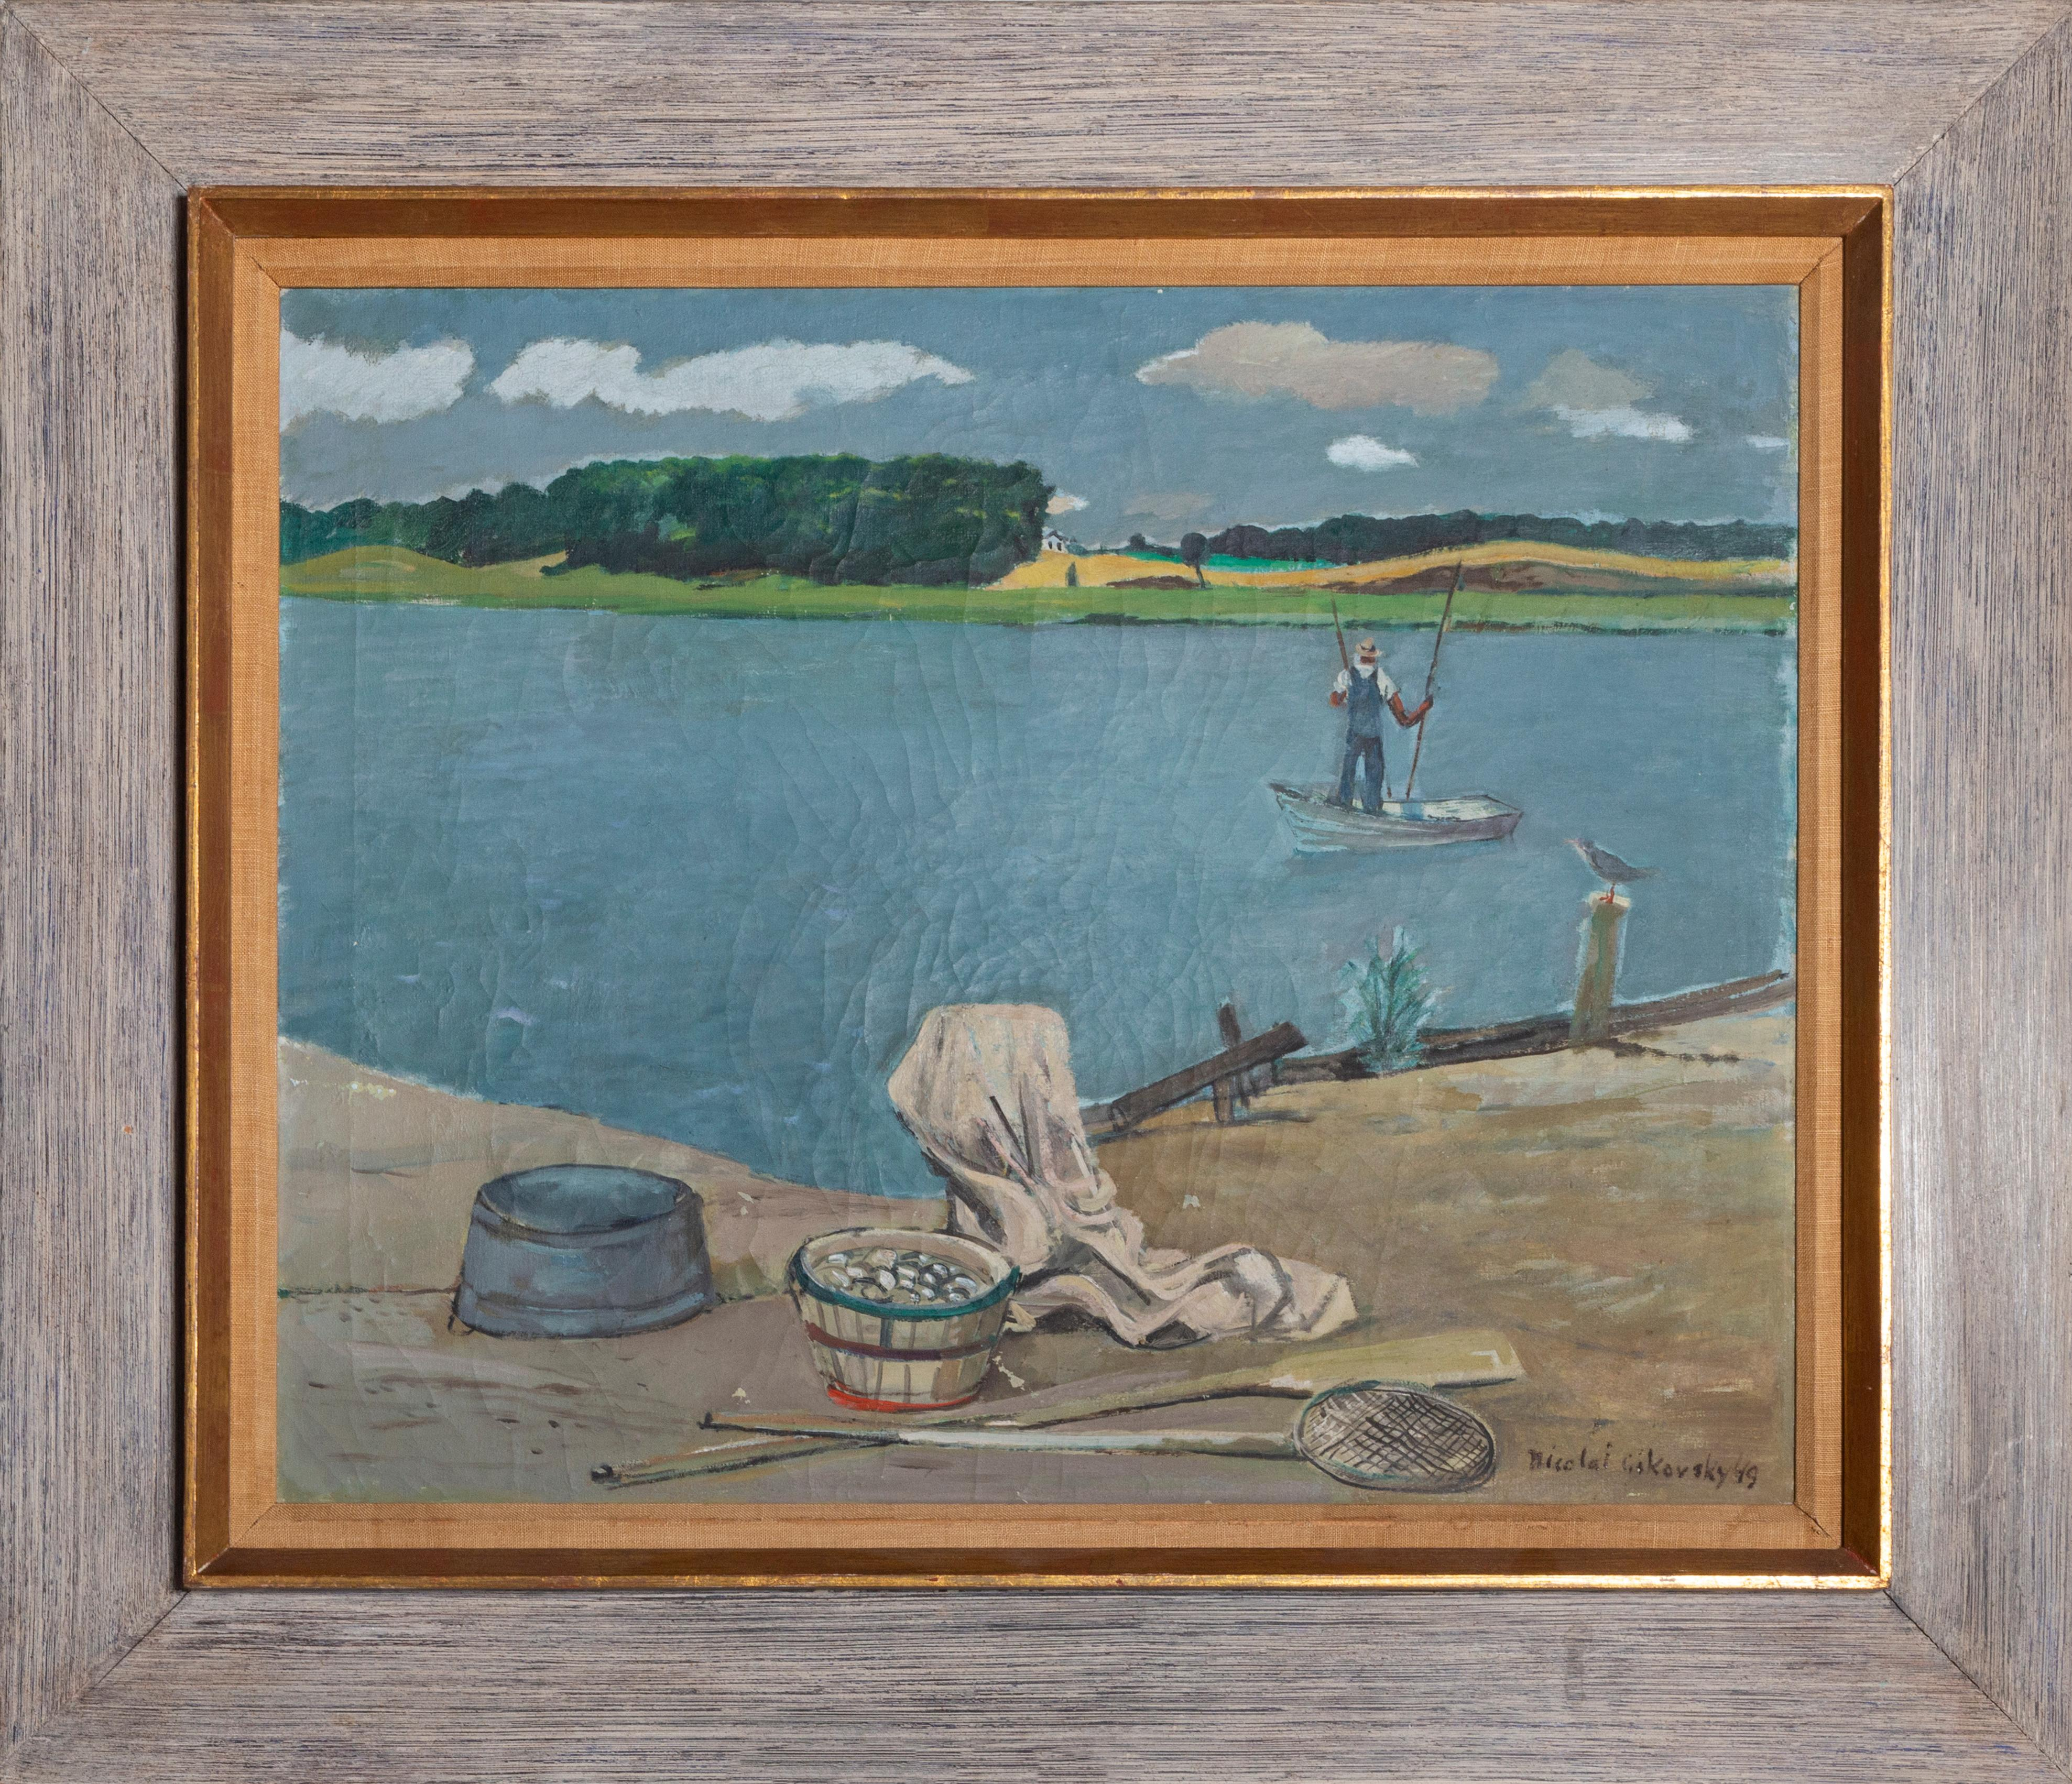 Fisherman on the River, Painting by Nicolai Cikovsky